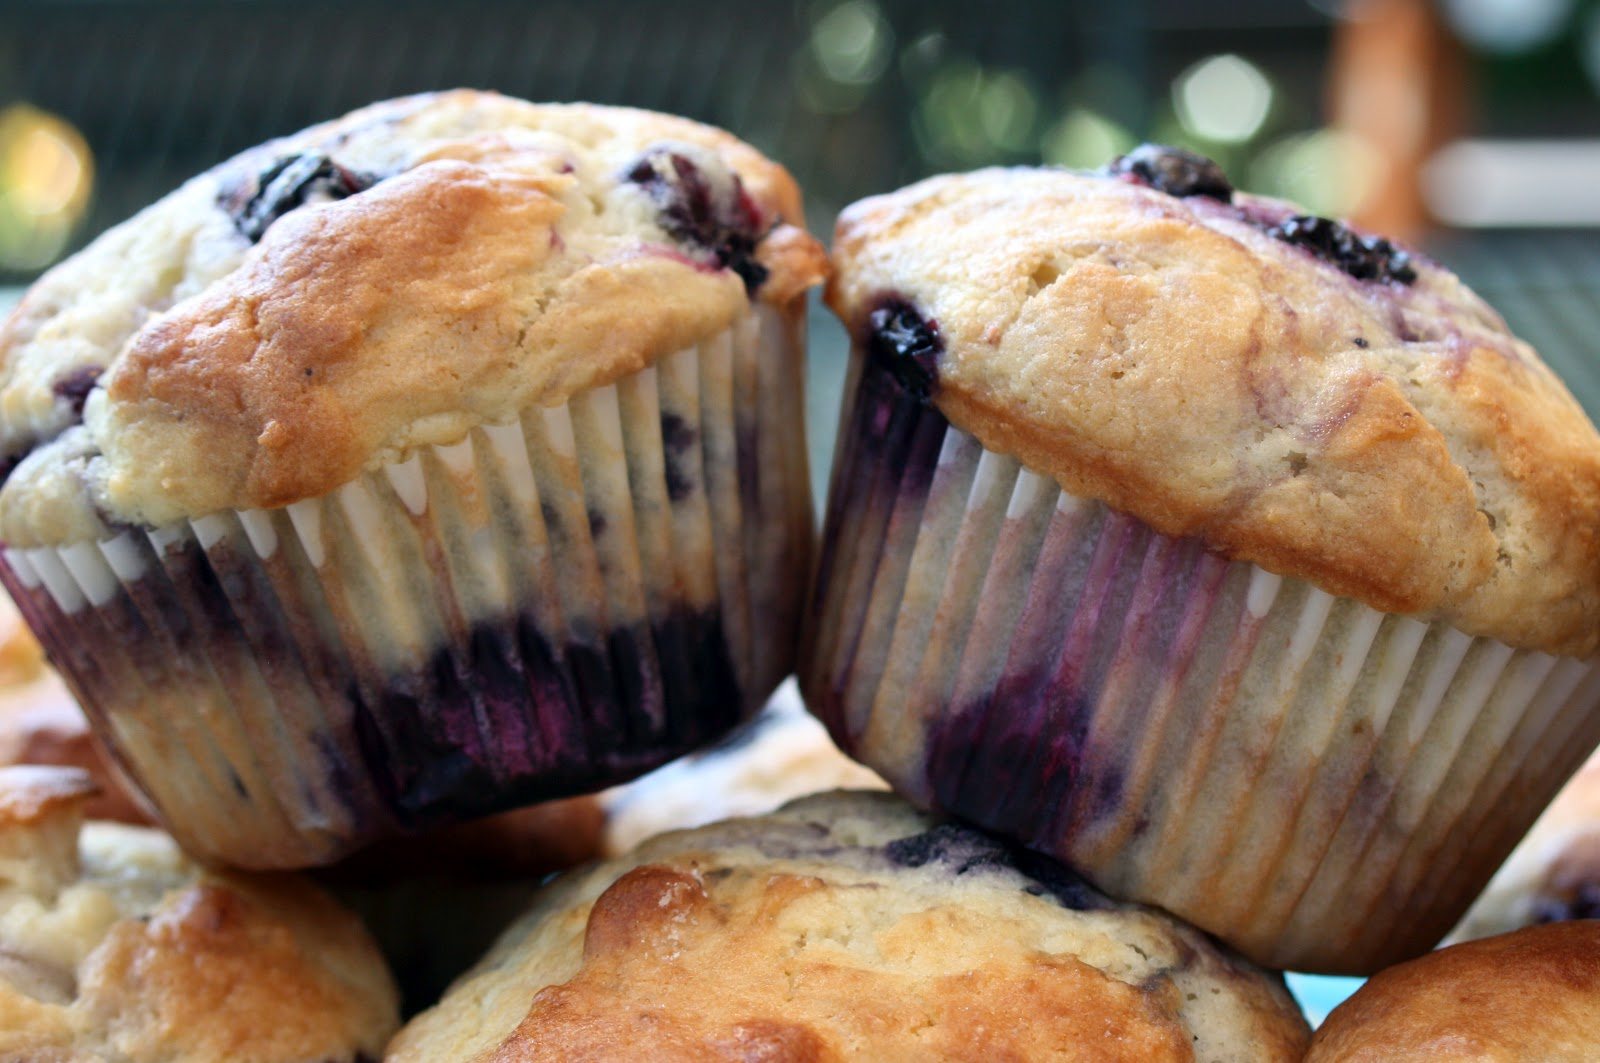 Food and Garden Dailies: Perfect Blueberry Muffins